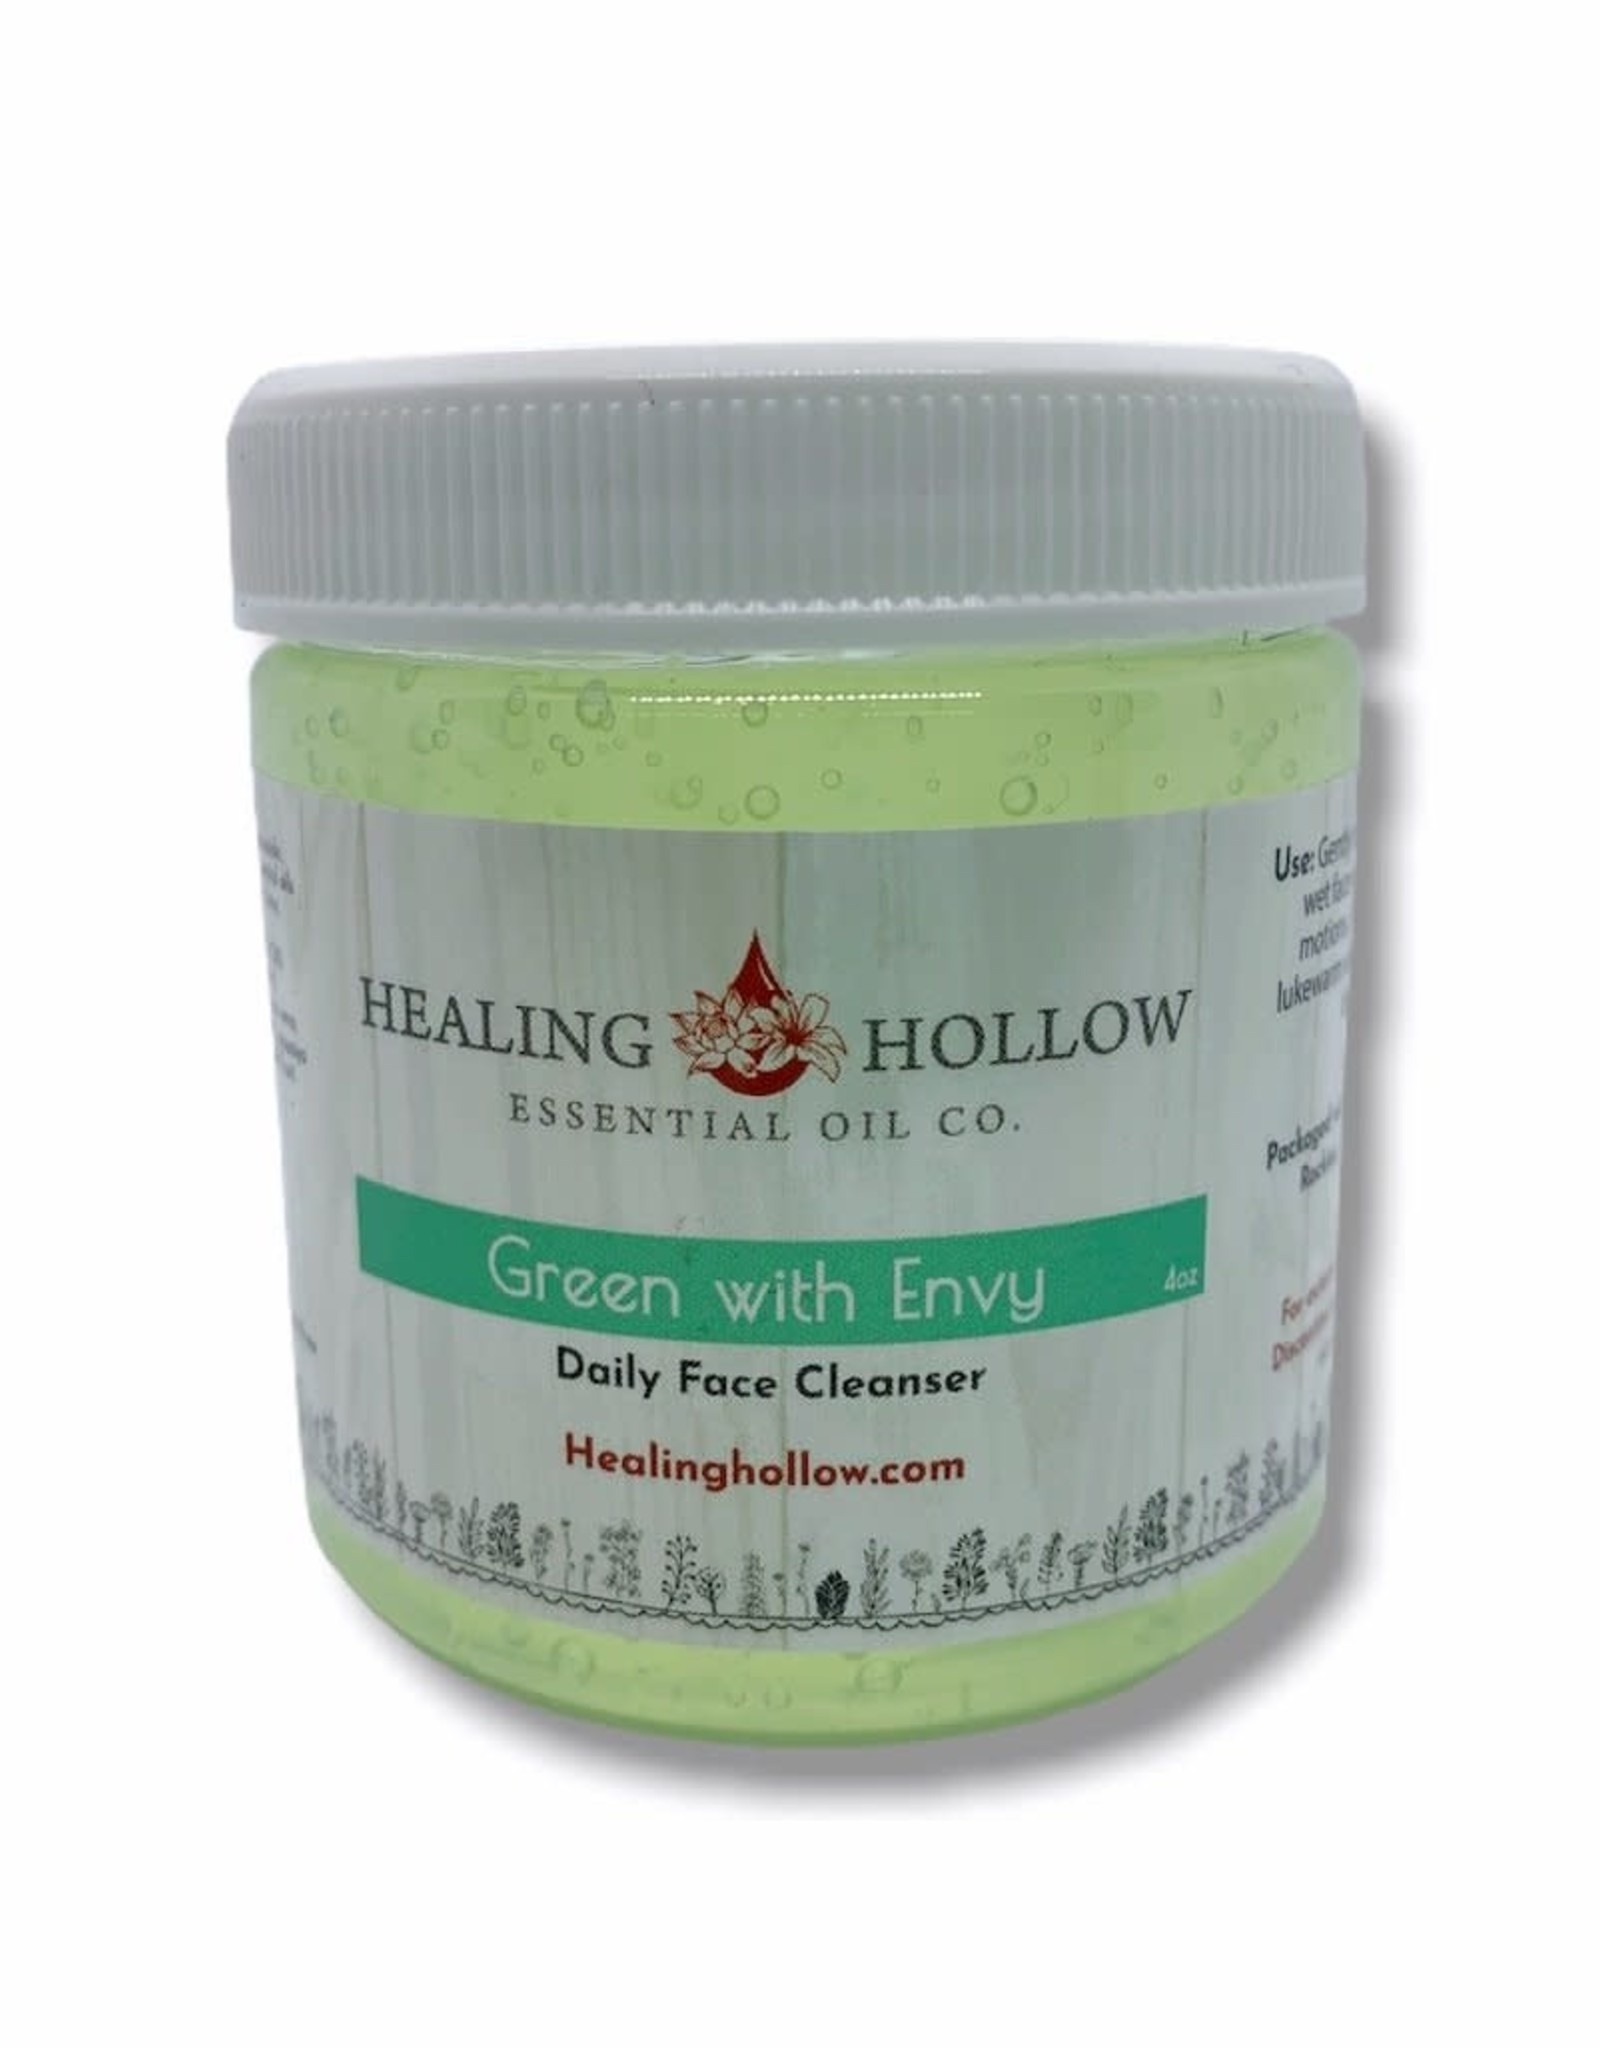 Green with Envy Face Cleanser